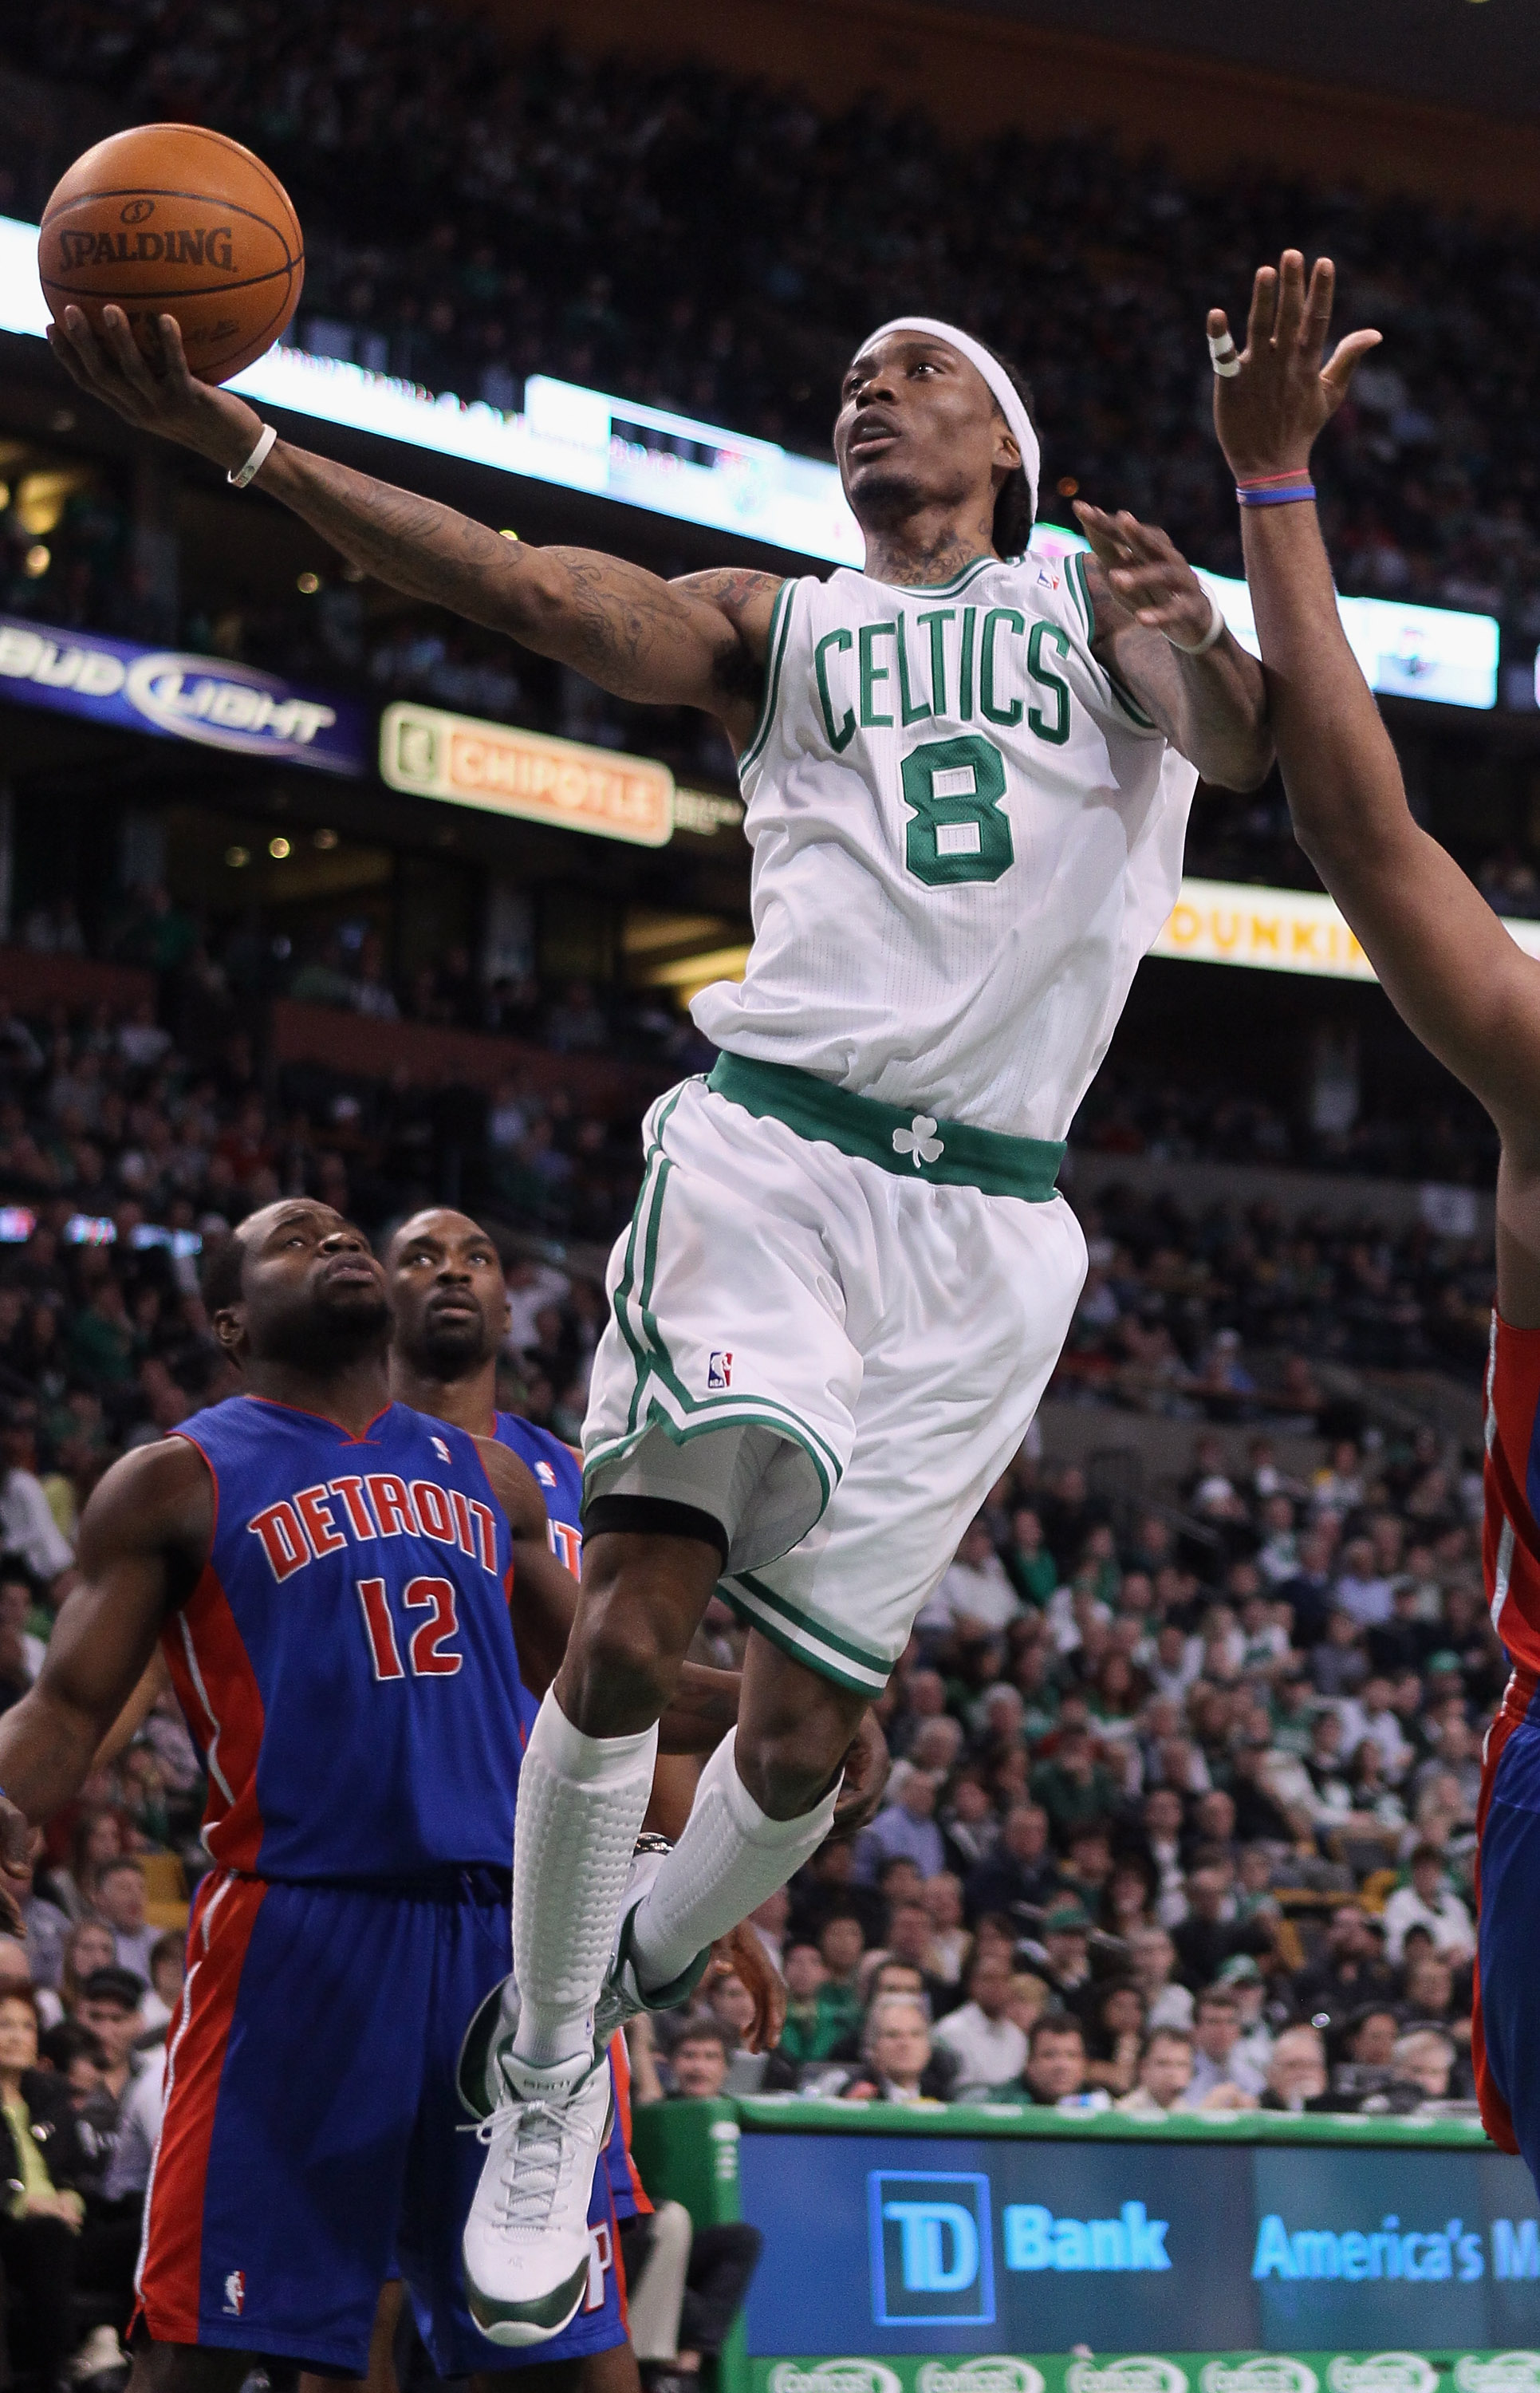 BOSTON, MA - JANUARY 19:  Marquis Daniels #8 of the Boston Celtics goes up for a shot as Will Bynum #12 of the Detroit Pistons defends on January 19, 2011 at the TD Garden in Boston, Massachusetts.  NOTE TO USER: User expressly acknowledges and agrees tha